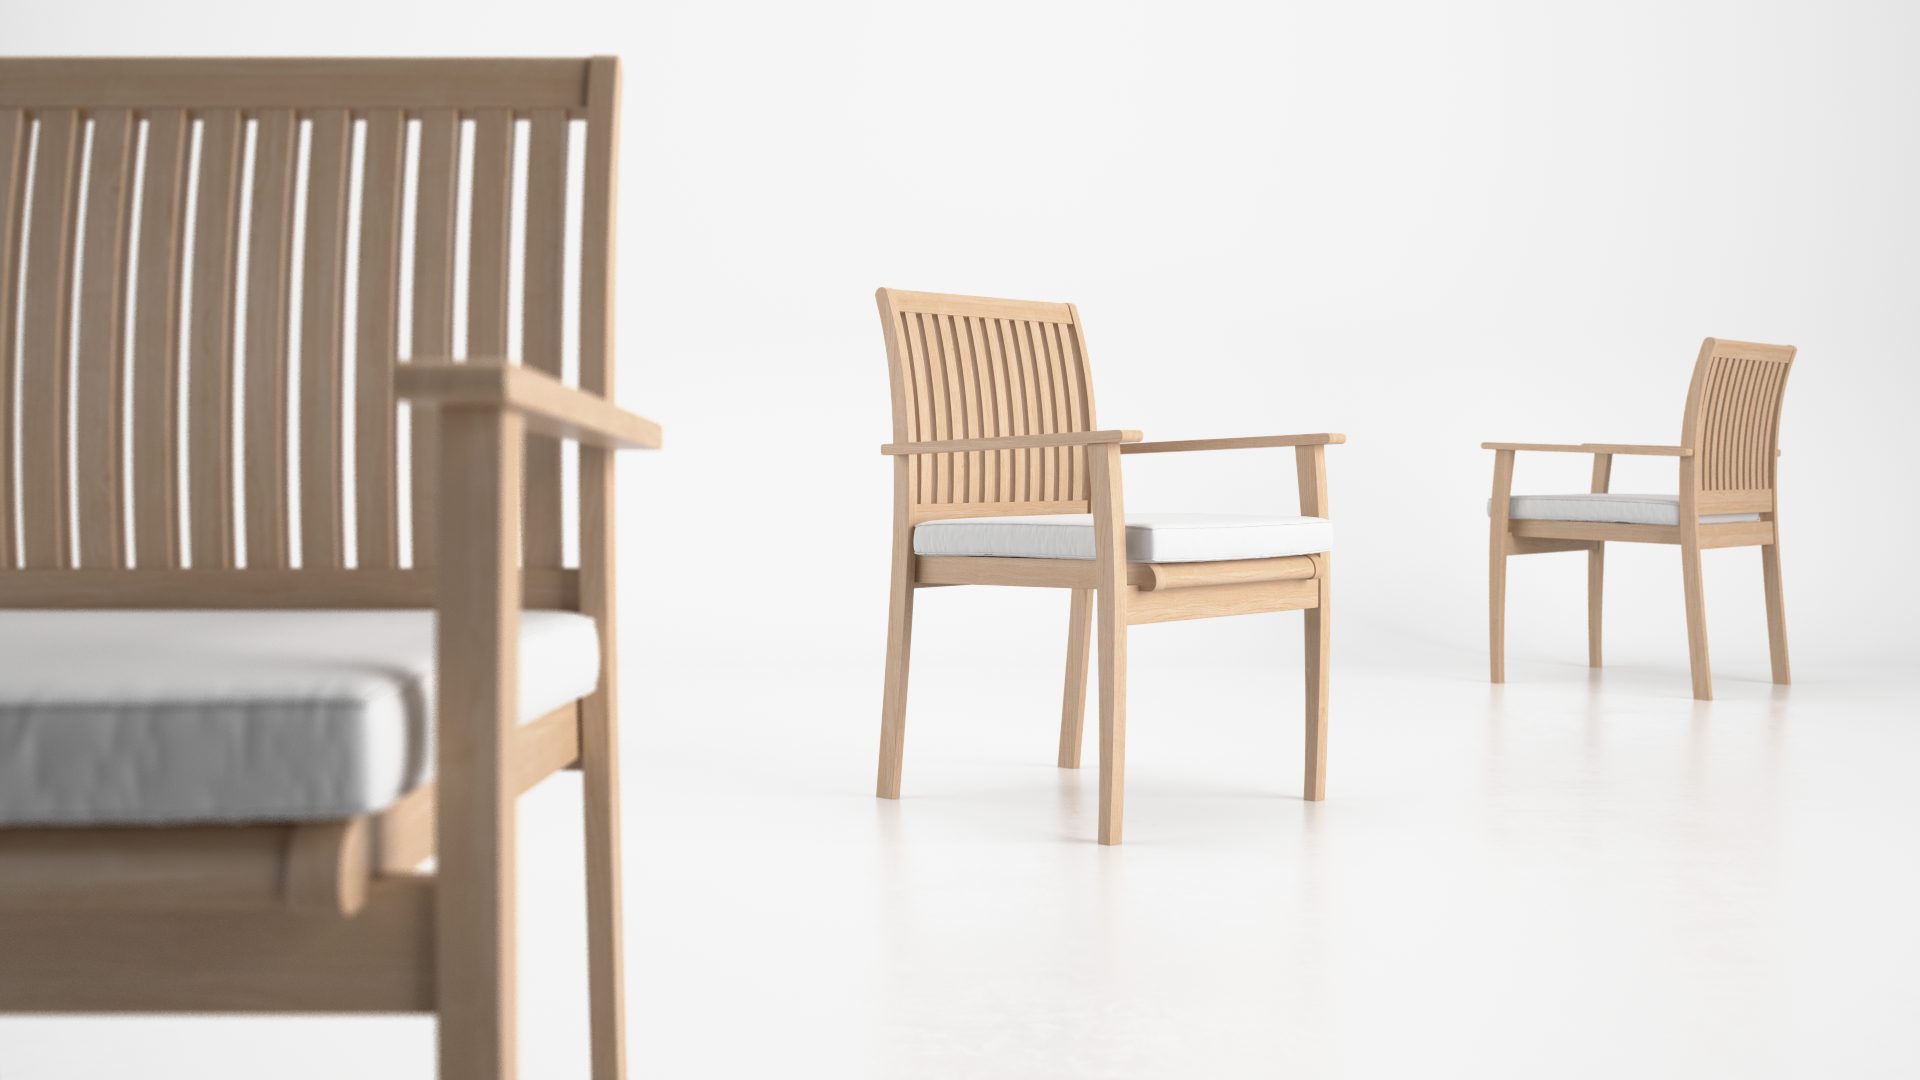 StirlingStacking_Armchair_WhiteSet_01_0005